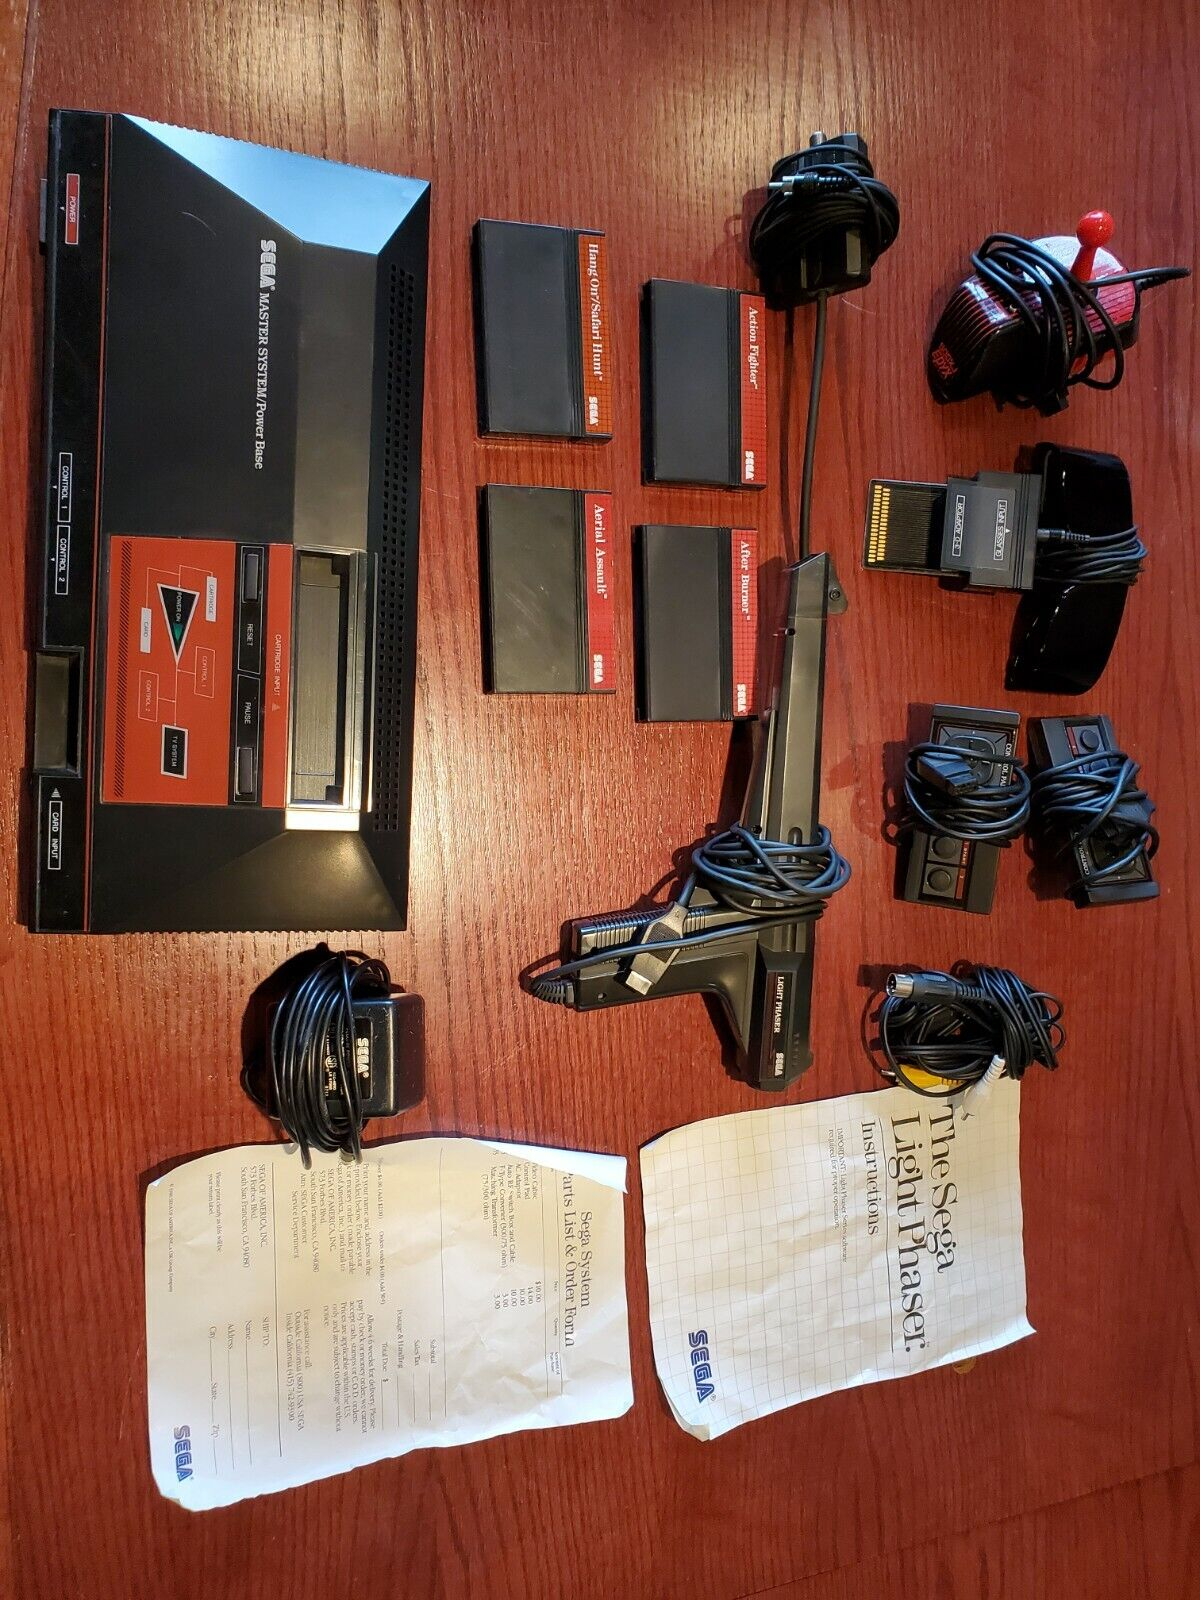 sega master system lot, console, controllers, gun, 3D glasses, connectors,games